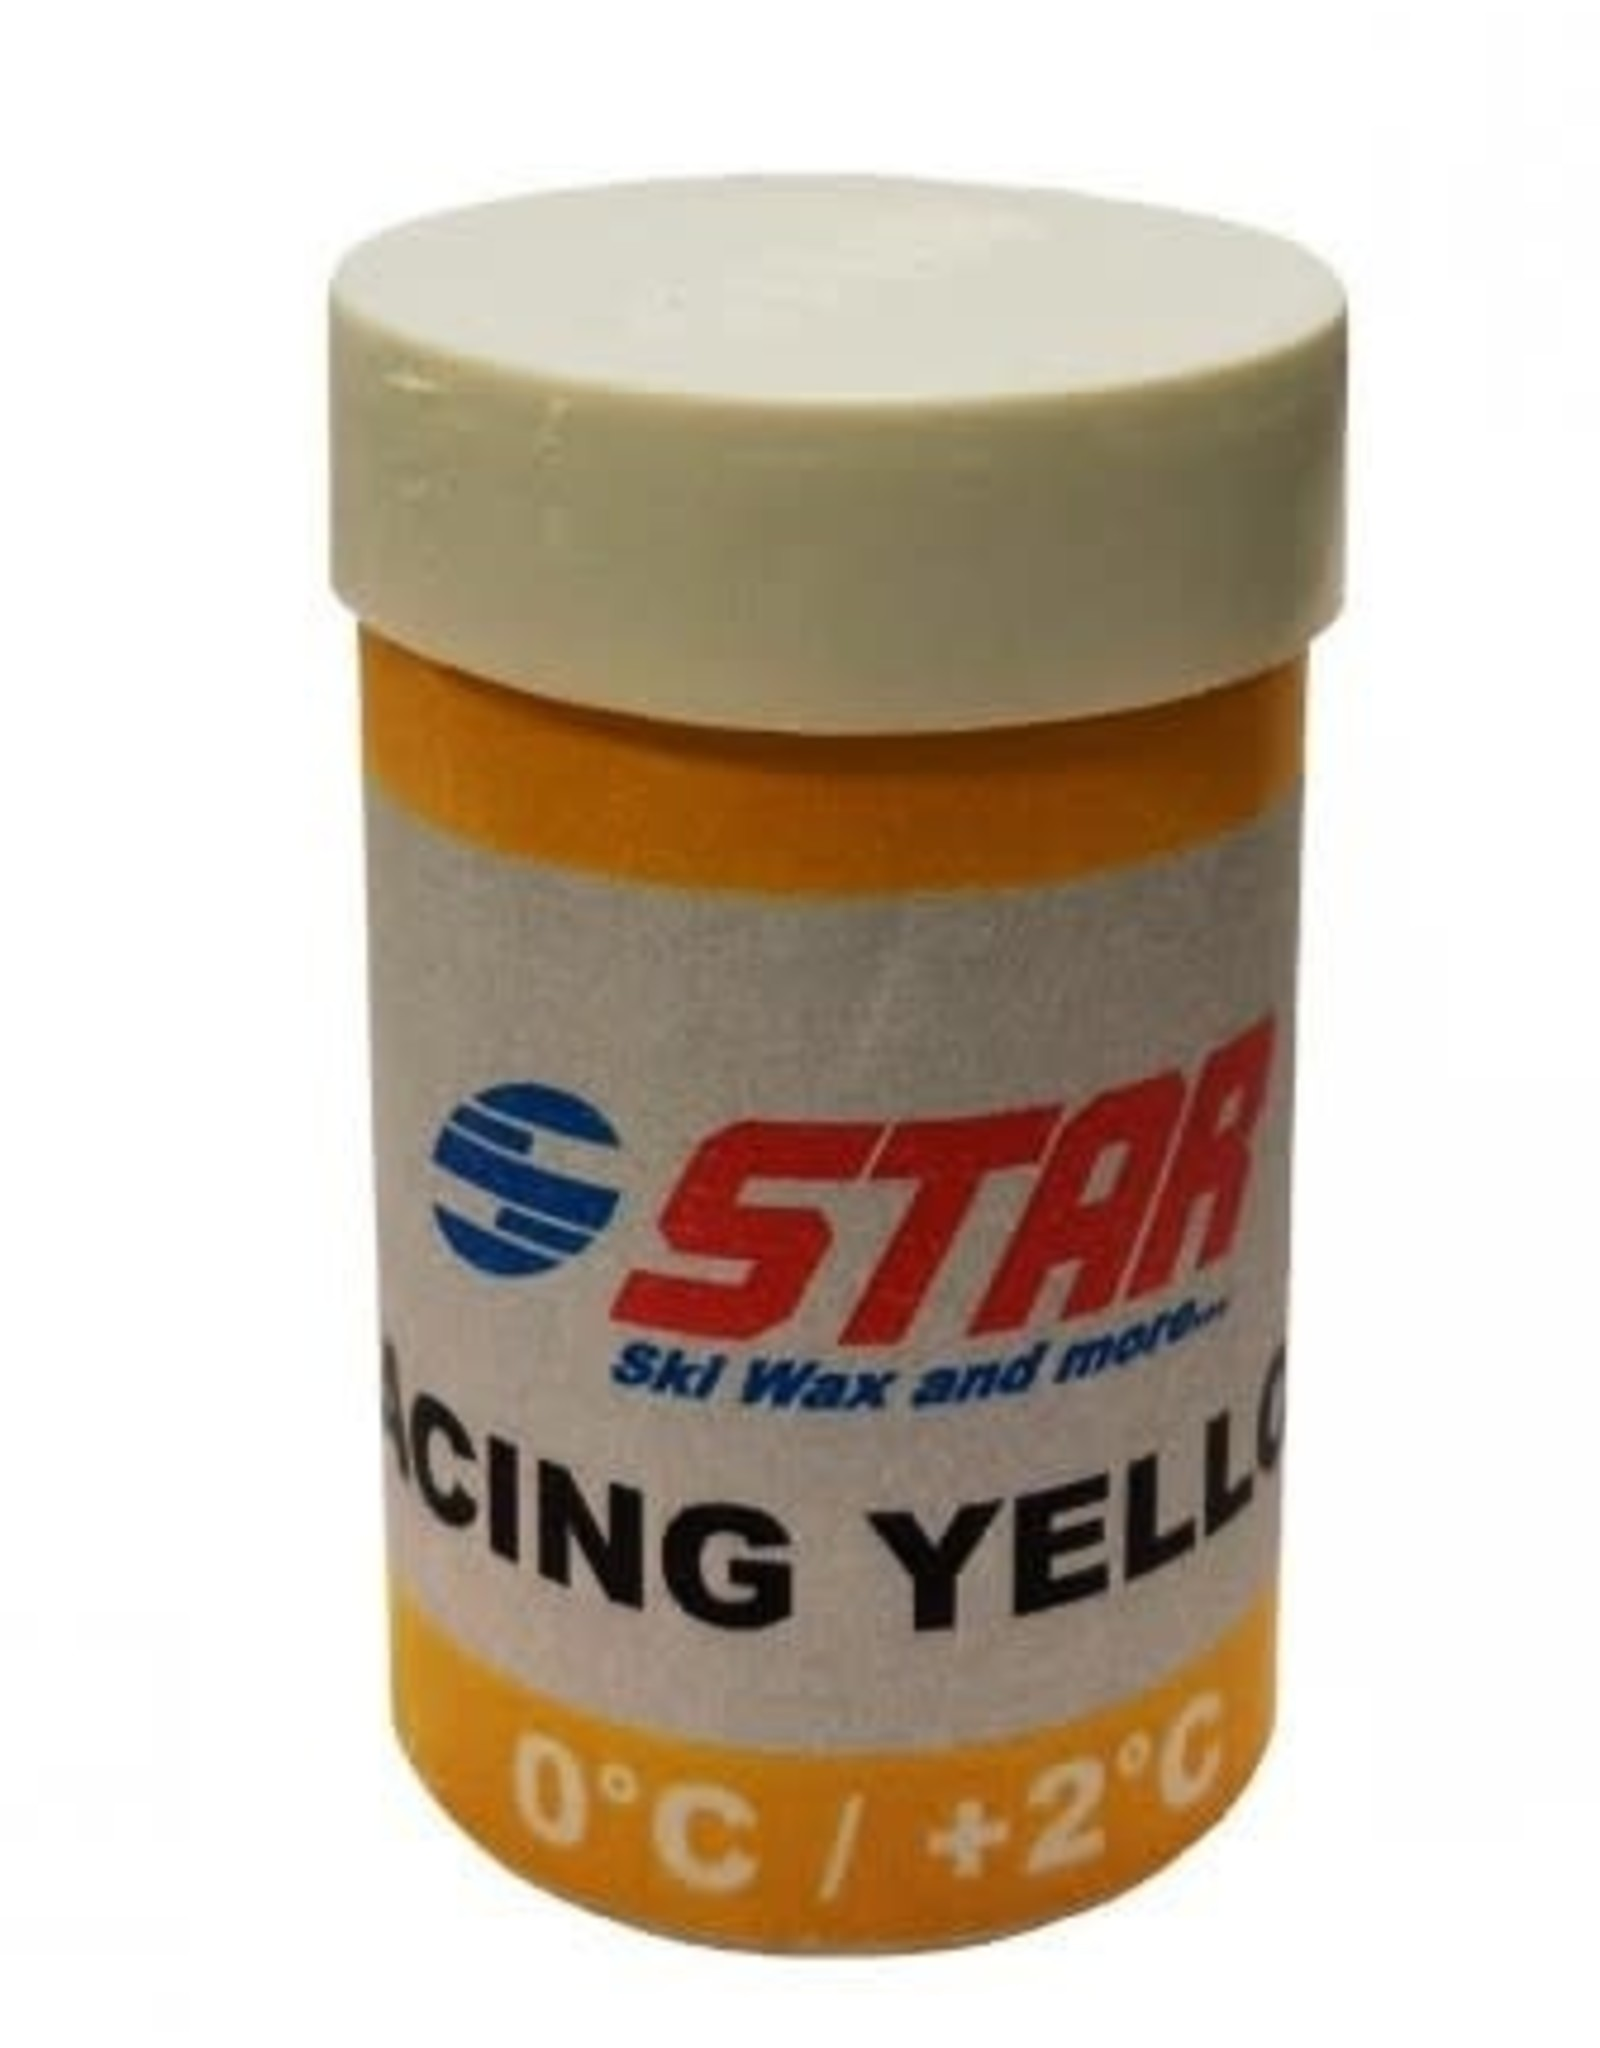 Star Star Kick Racing Yellow